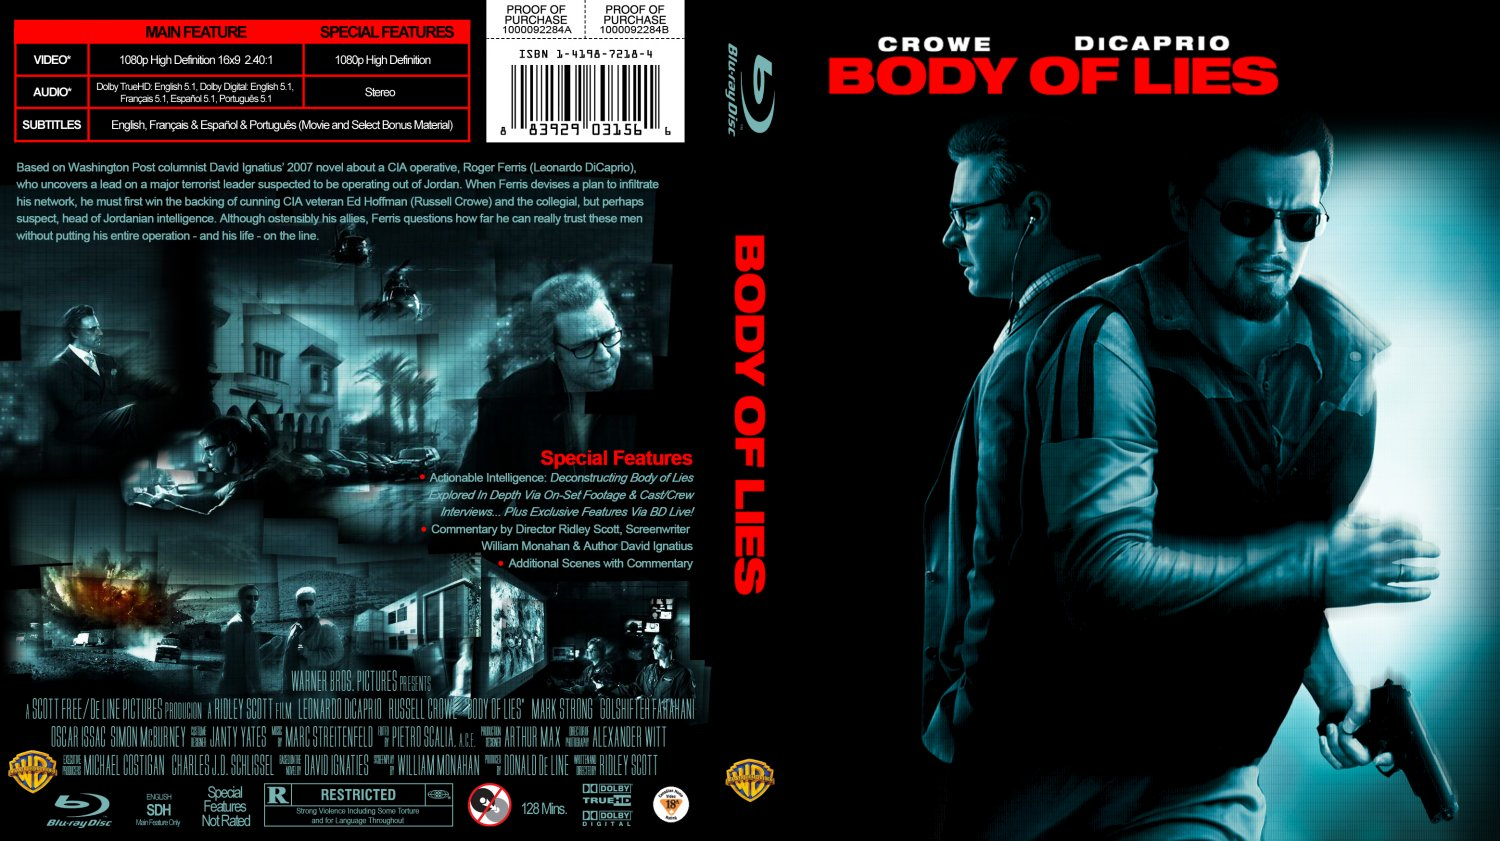 body of lies blu ray cover v2 movie blu ray custom. Black Bedroom Furniture Sets. Home Design Ideas